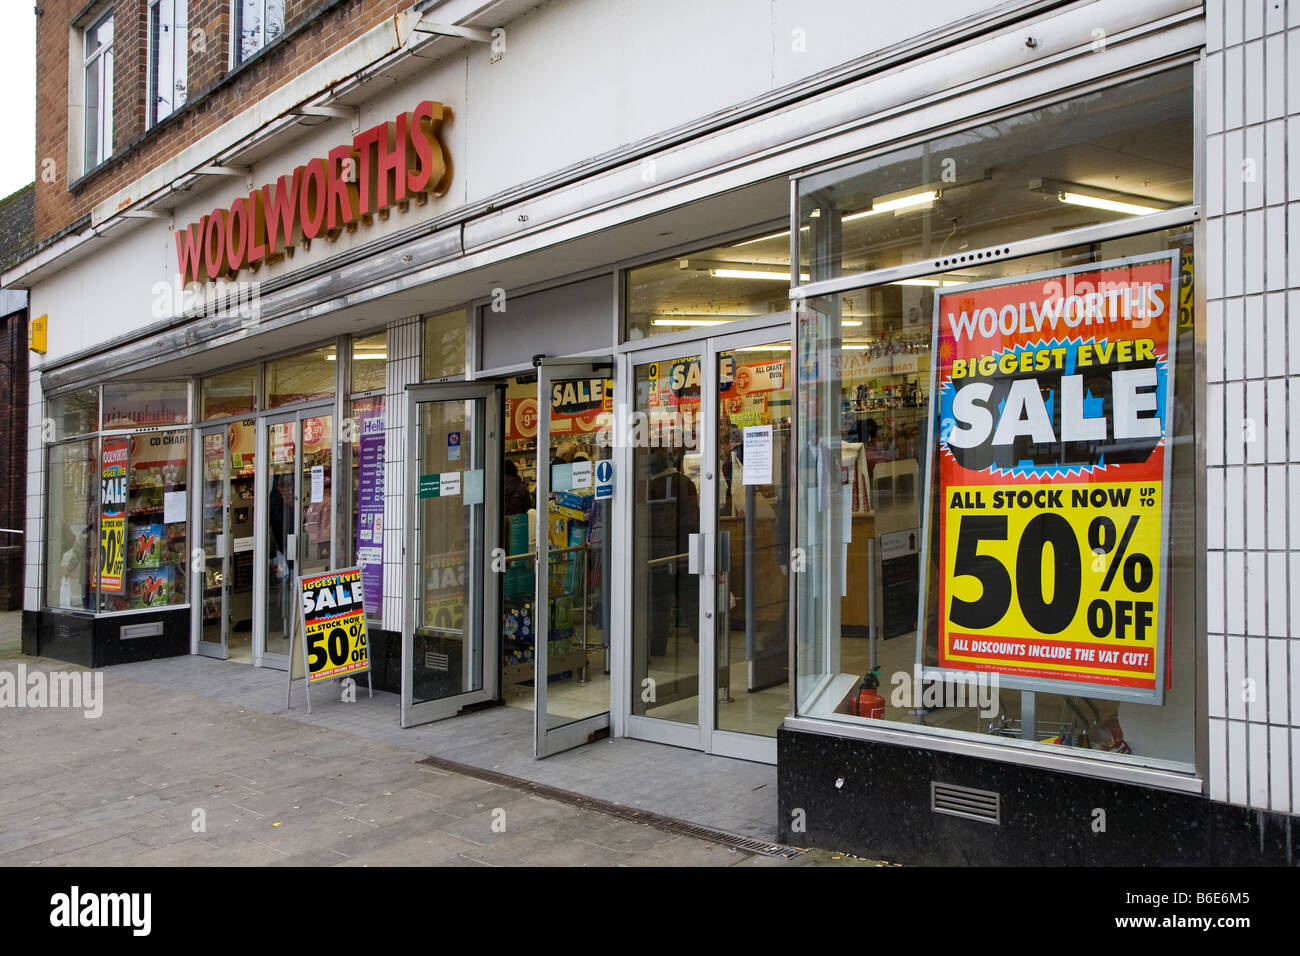 Woolworths shop front closing down sale sign Ebbw Vale Wales UK - Stock Image